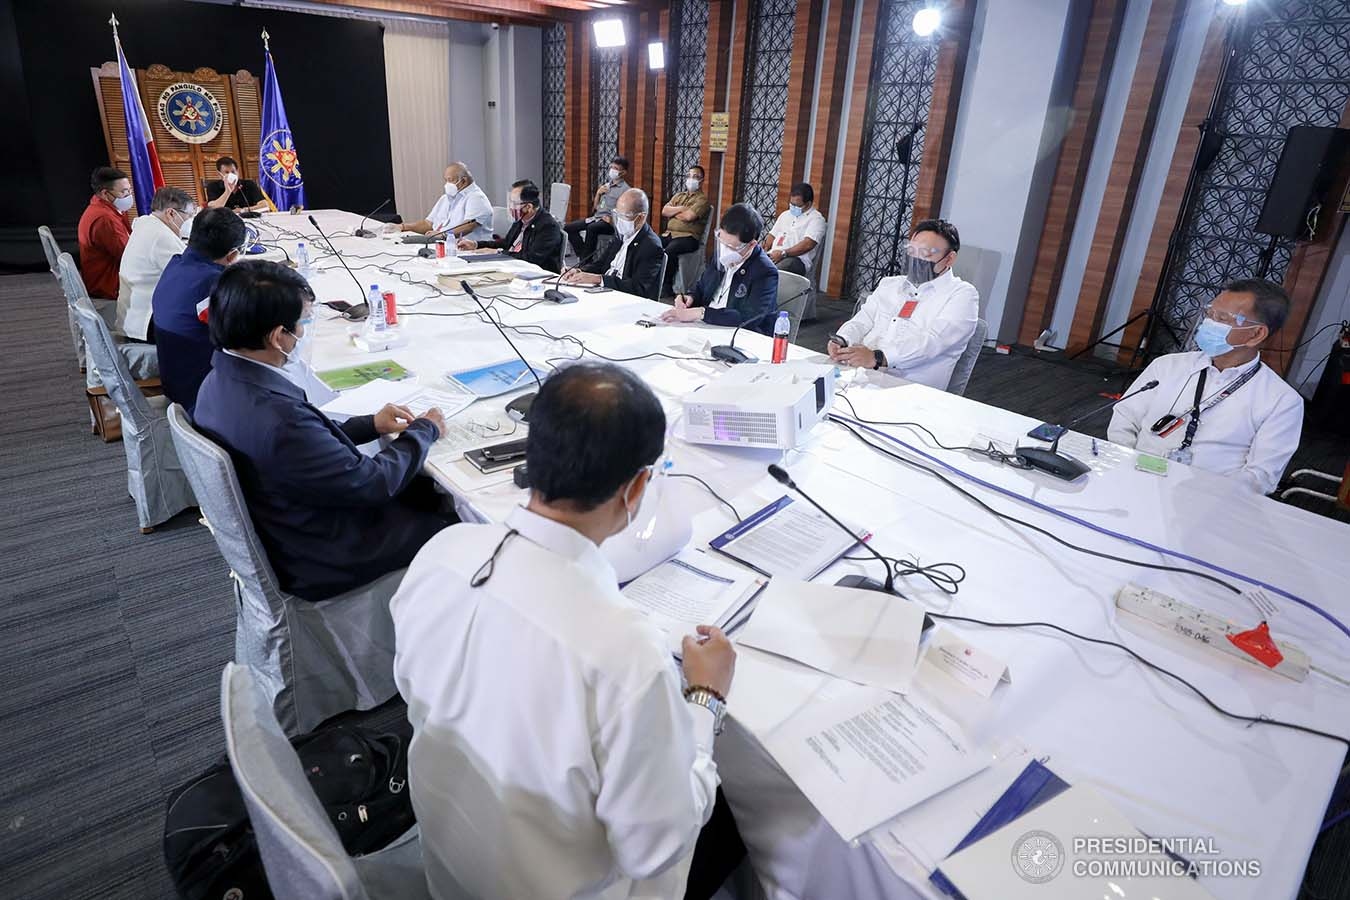 President Rodrigo Roa Duterte holds a meeting with the Inter-Agency Task Force on the Emerging Infectious Diseases (IATF-EID) core members at the Matina Enclaves in Davao City on August 24, 2020. SIMEON CELI JR./PRESIDENTIAL PHOTO